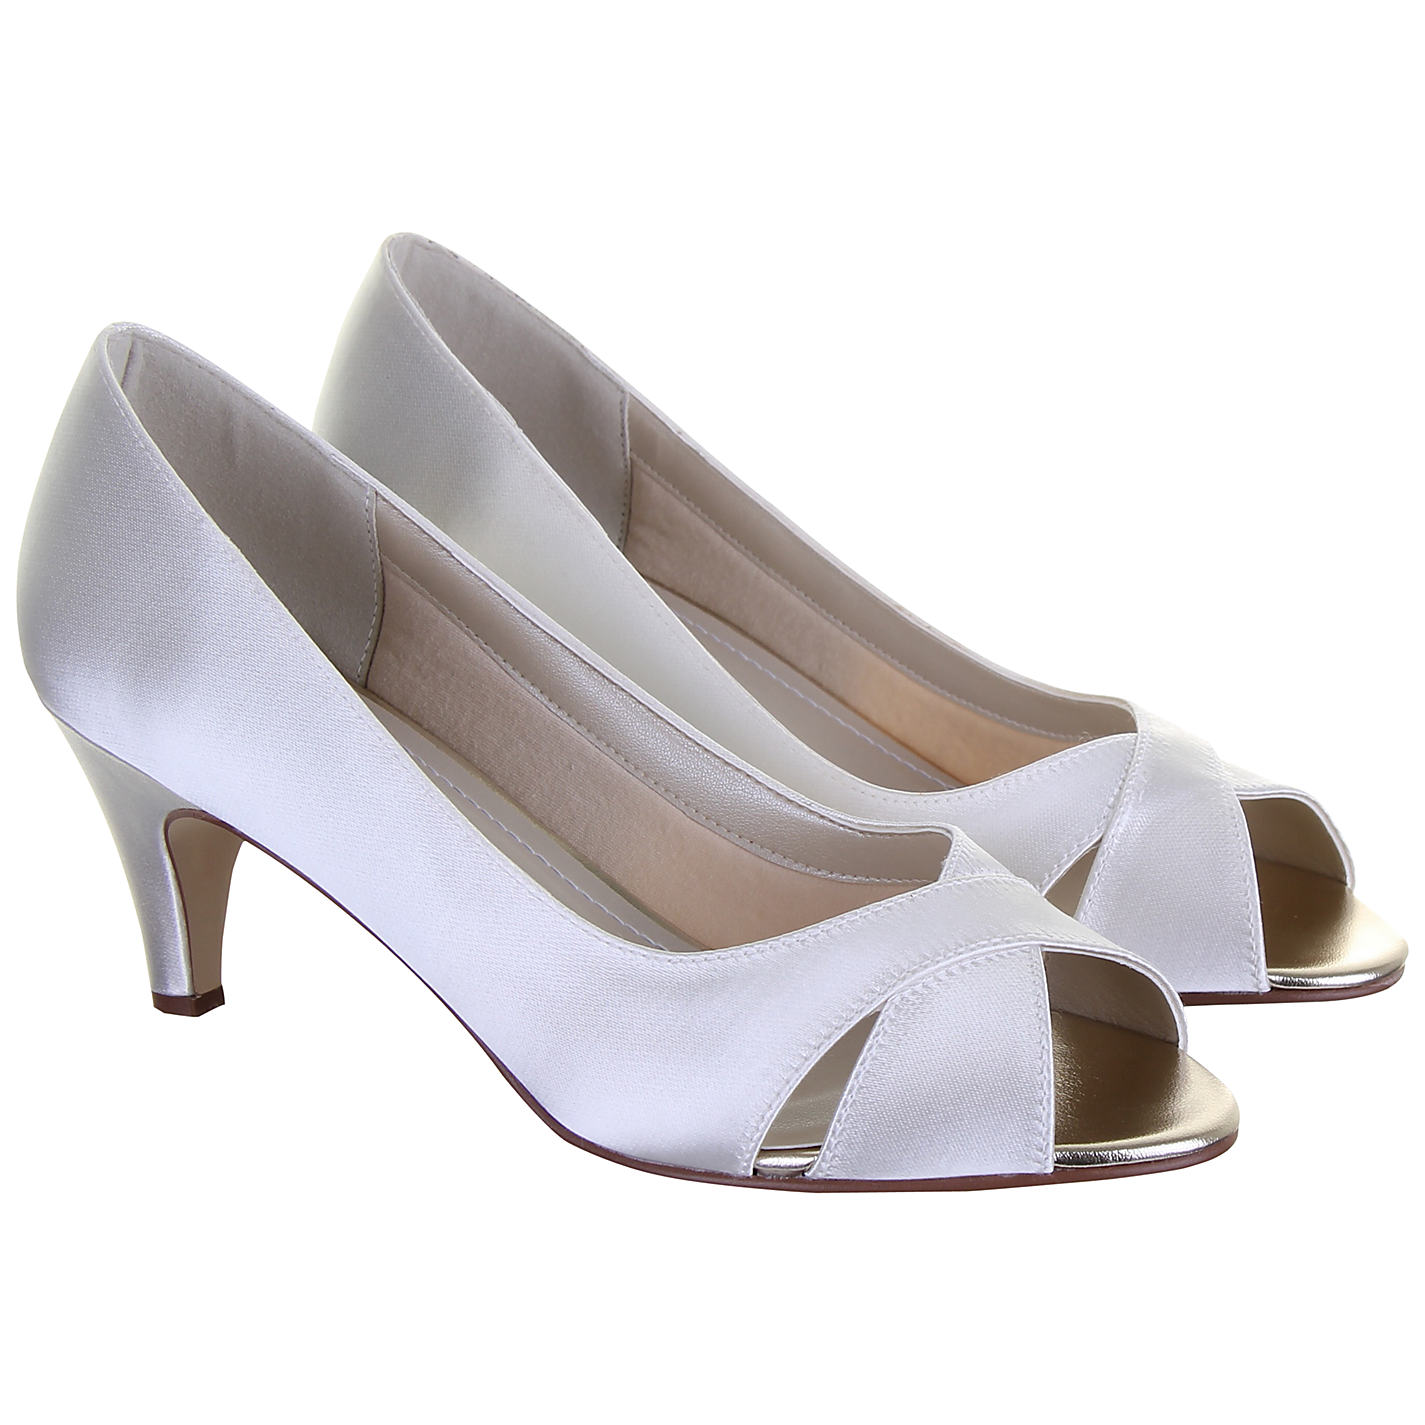 Cream Kitten Heel Shoes Uk